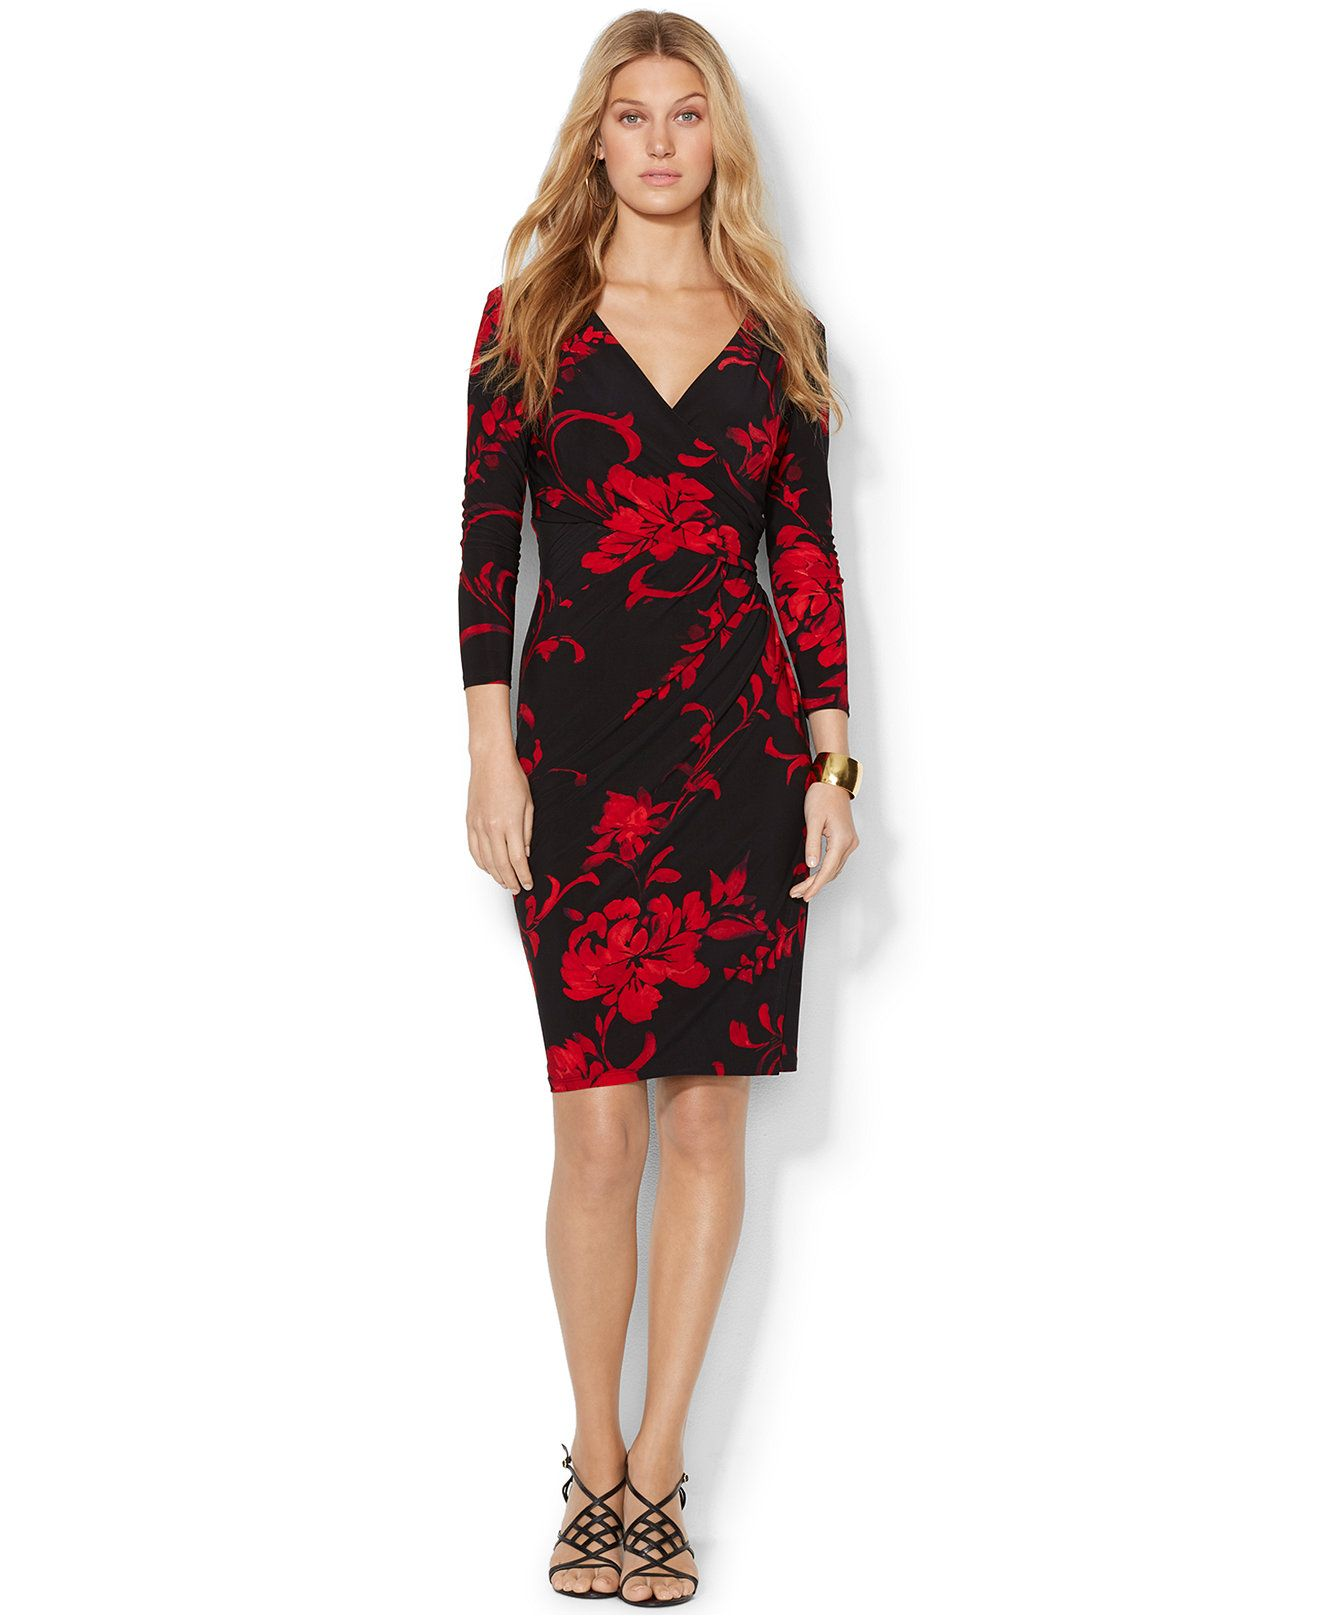 5b05f25124bf Lauren Ralph Lauren Floral-Print Faux-Wrap Dress - Dresses - Women - Macy's